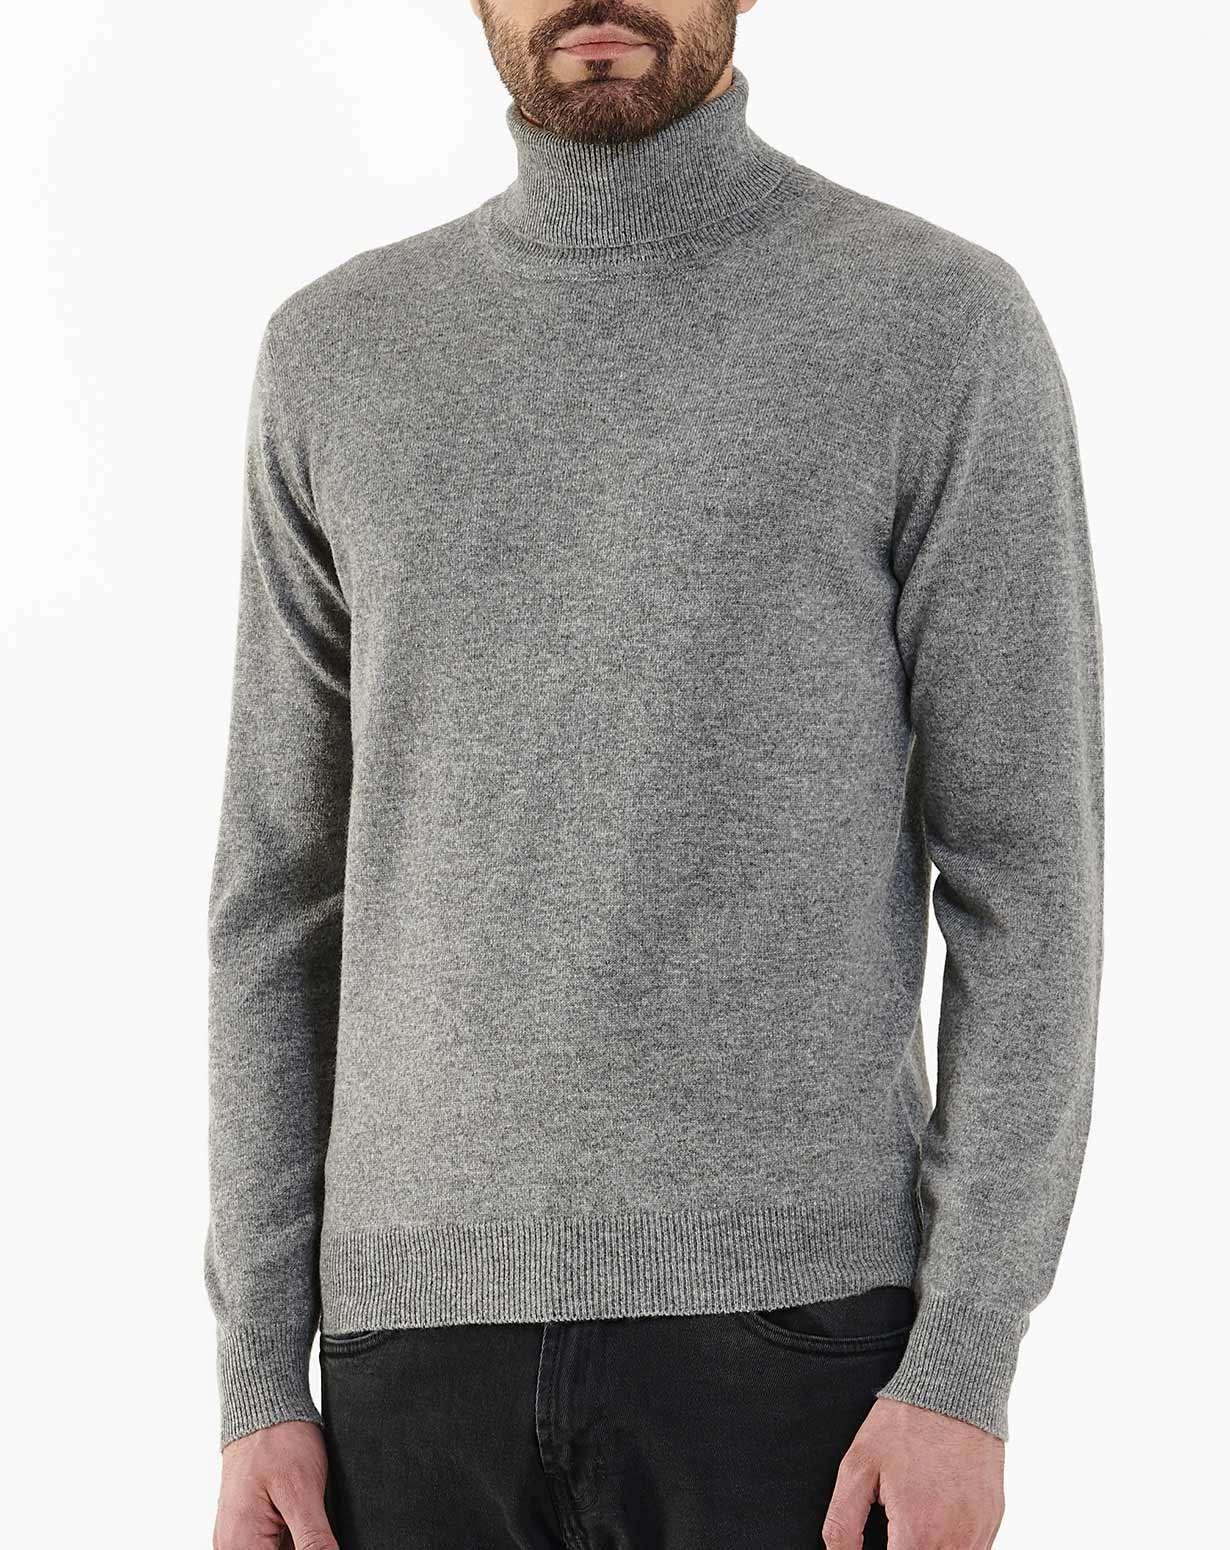 591733cc0 Men s Cashmere Roll Neck Jumper